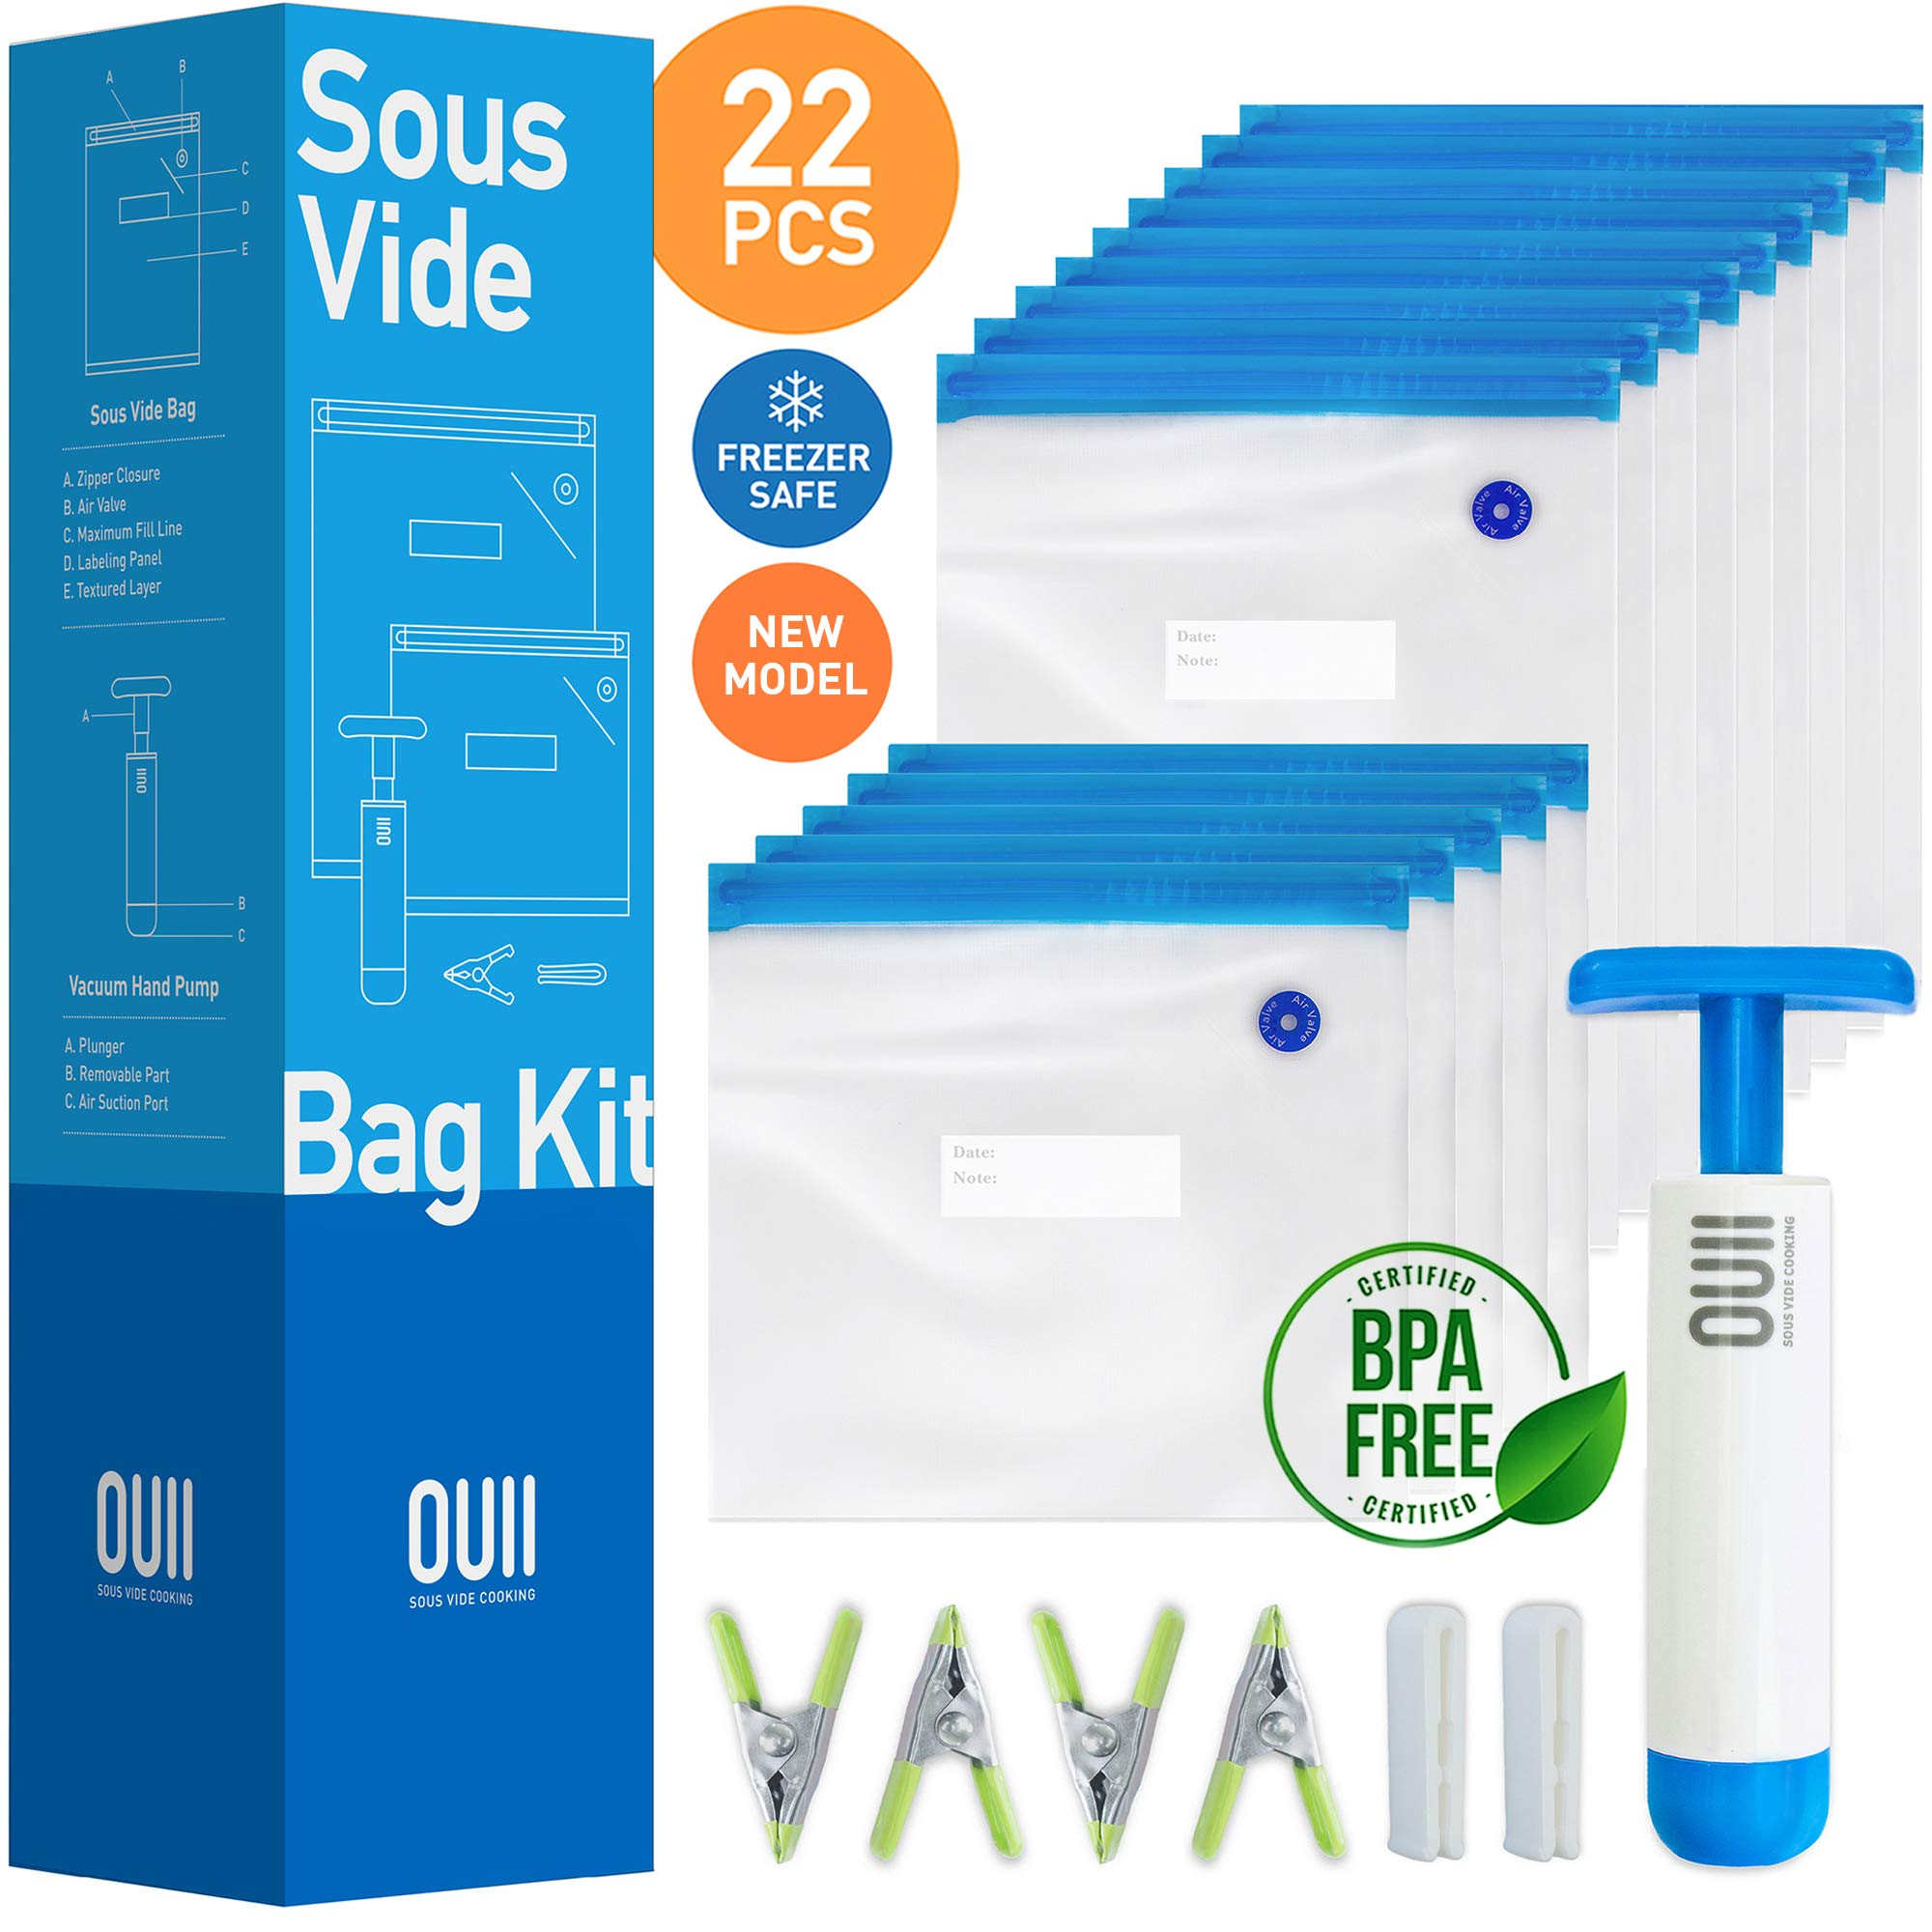 Sous Vide Bags for Joule and Anova | 15 Reusable BPA Free Food Vacuum Sealer Bags with Vacuum Hand Pump! Sous Vide Bag in Various Sizes! More Space Saving | Food Storage Freezer Safe | Fits Any Sous Vide Cooker by OUII